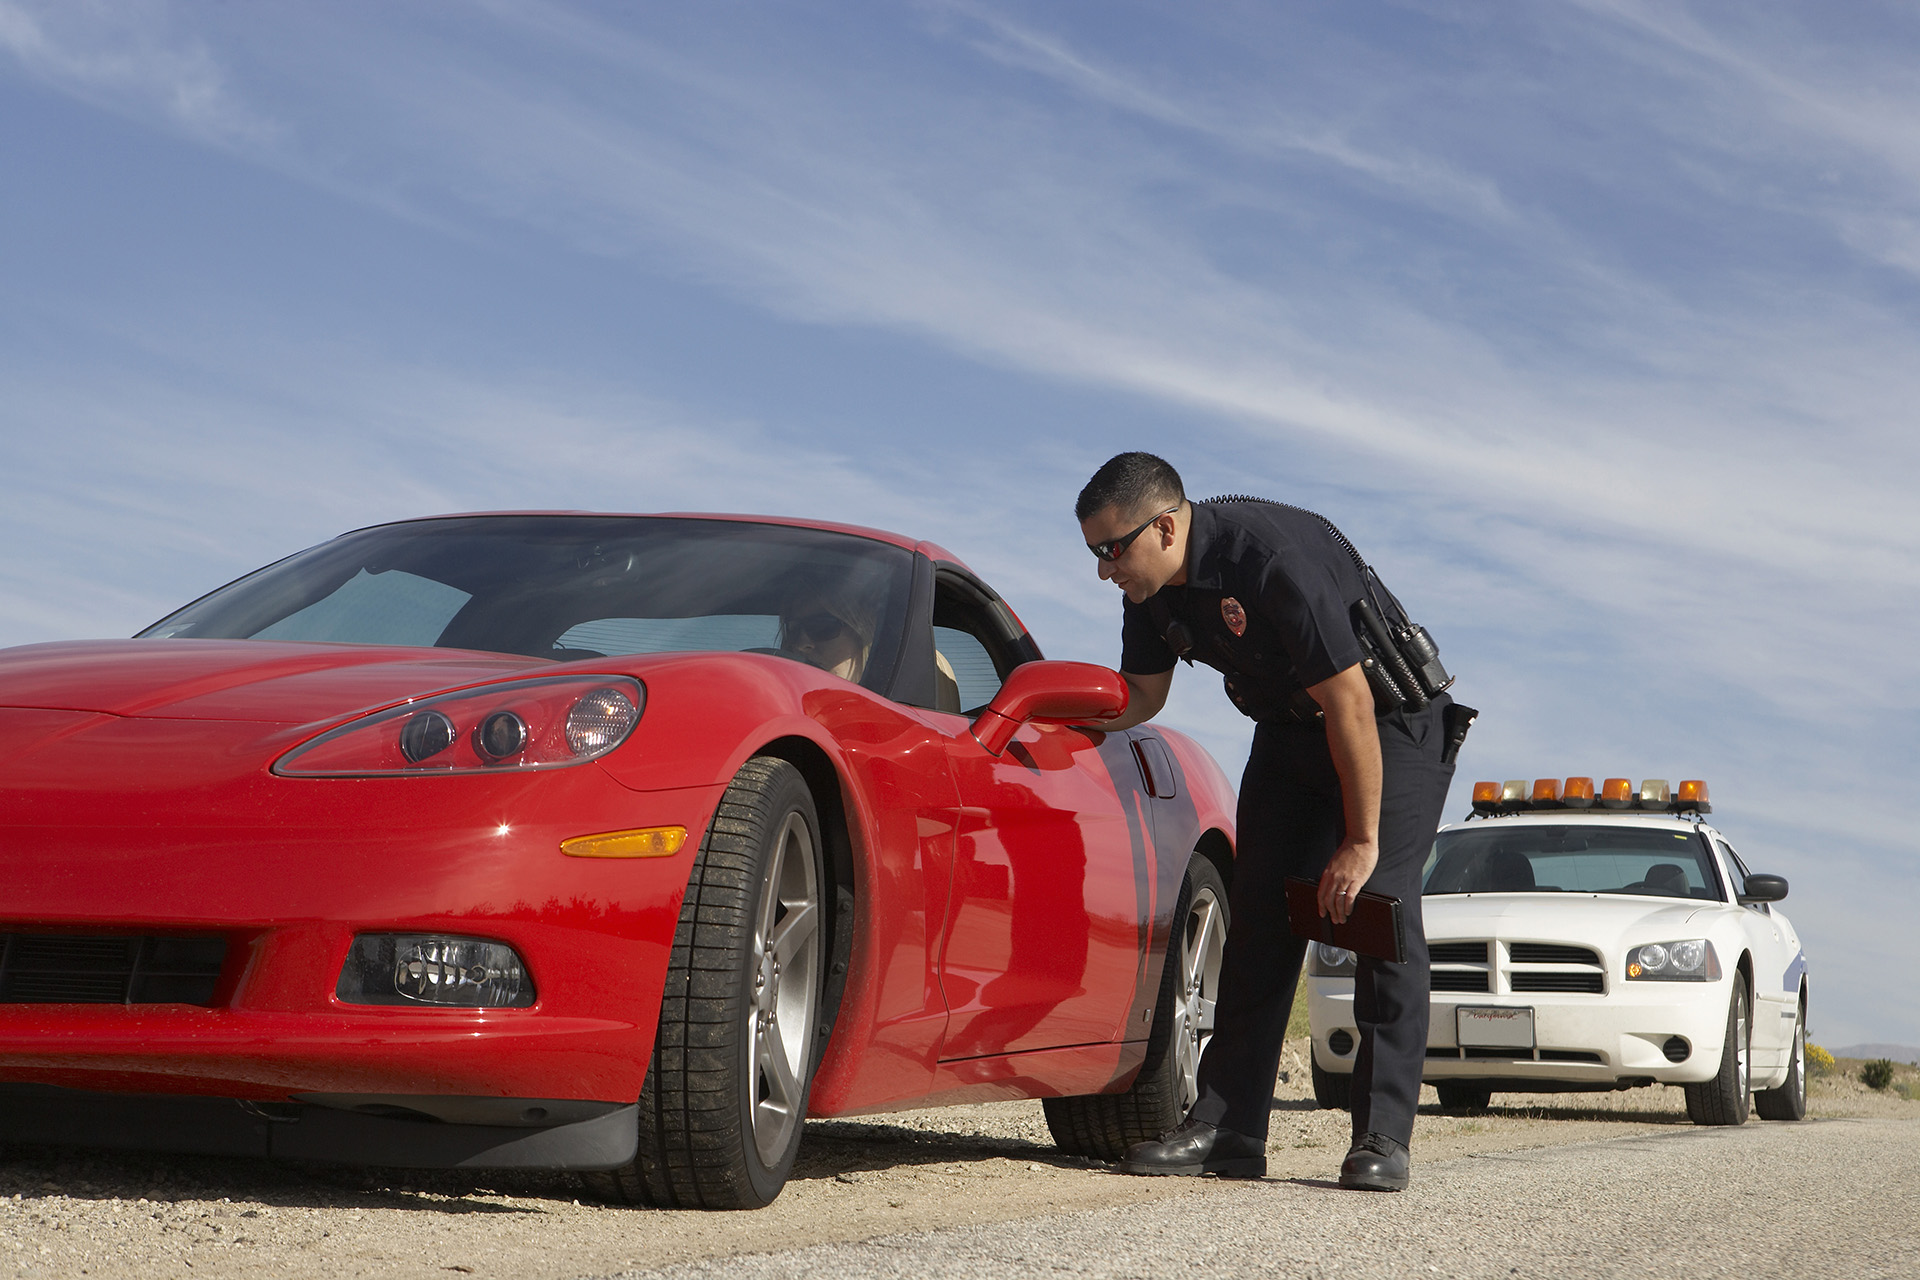 Police Officer Pulled Over a Red Sports Car for a Highway Traffic Act Violation